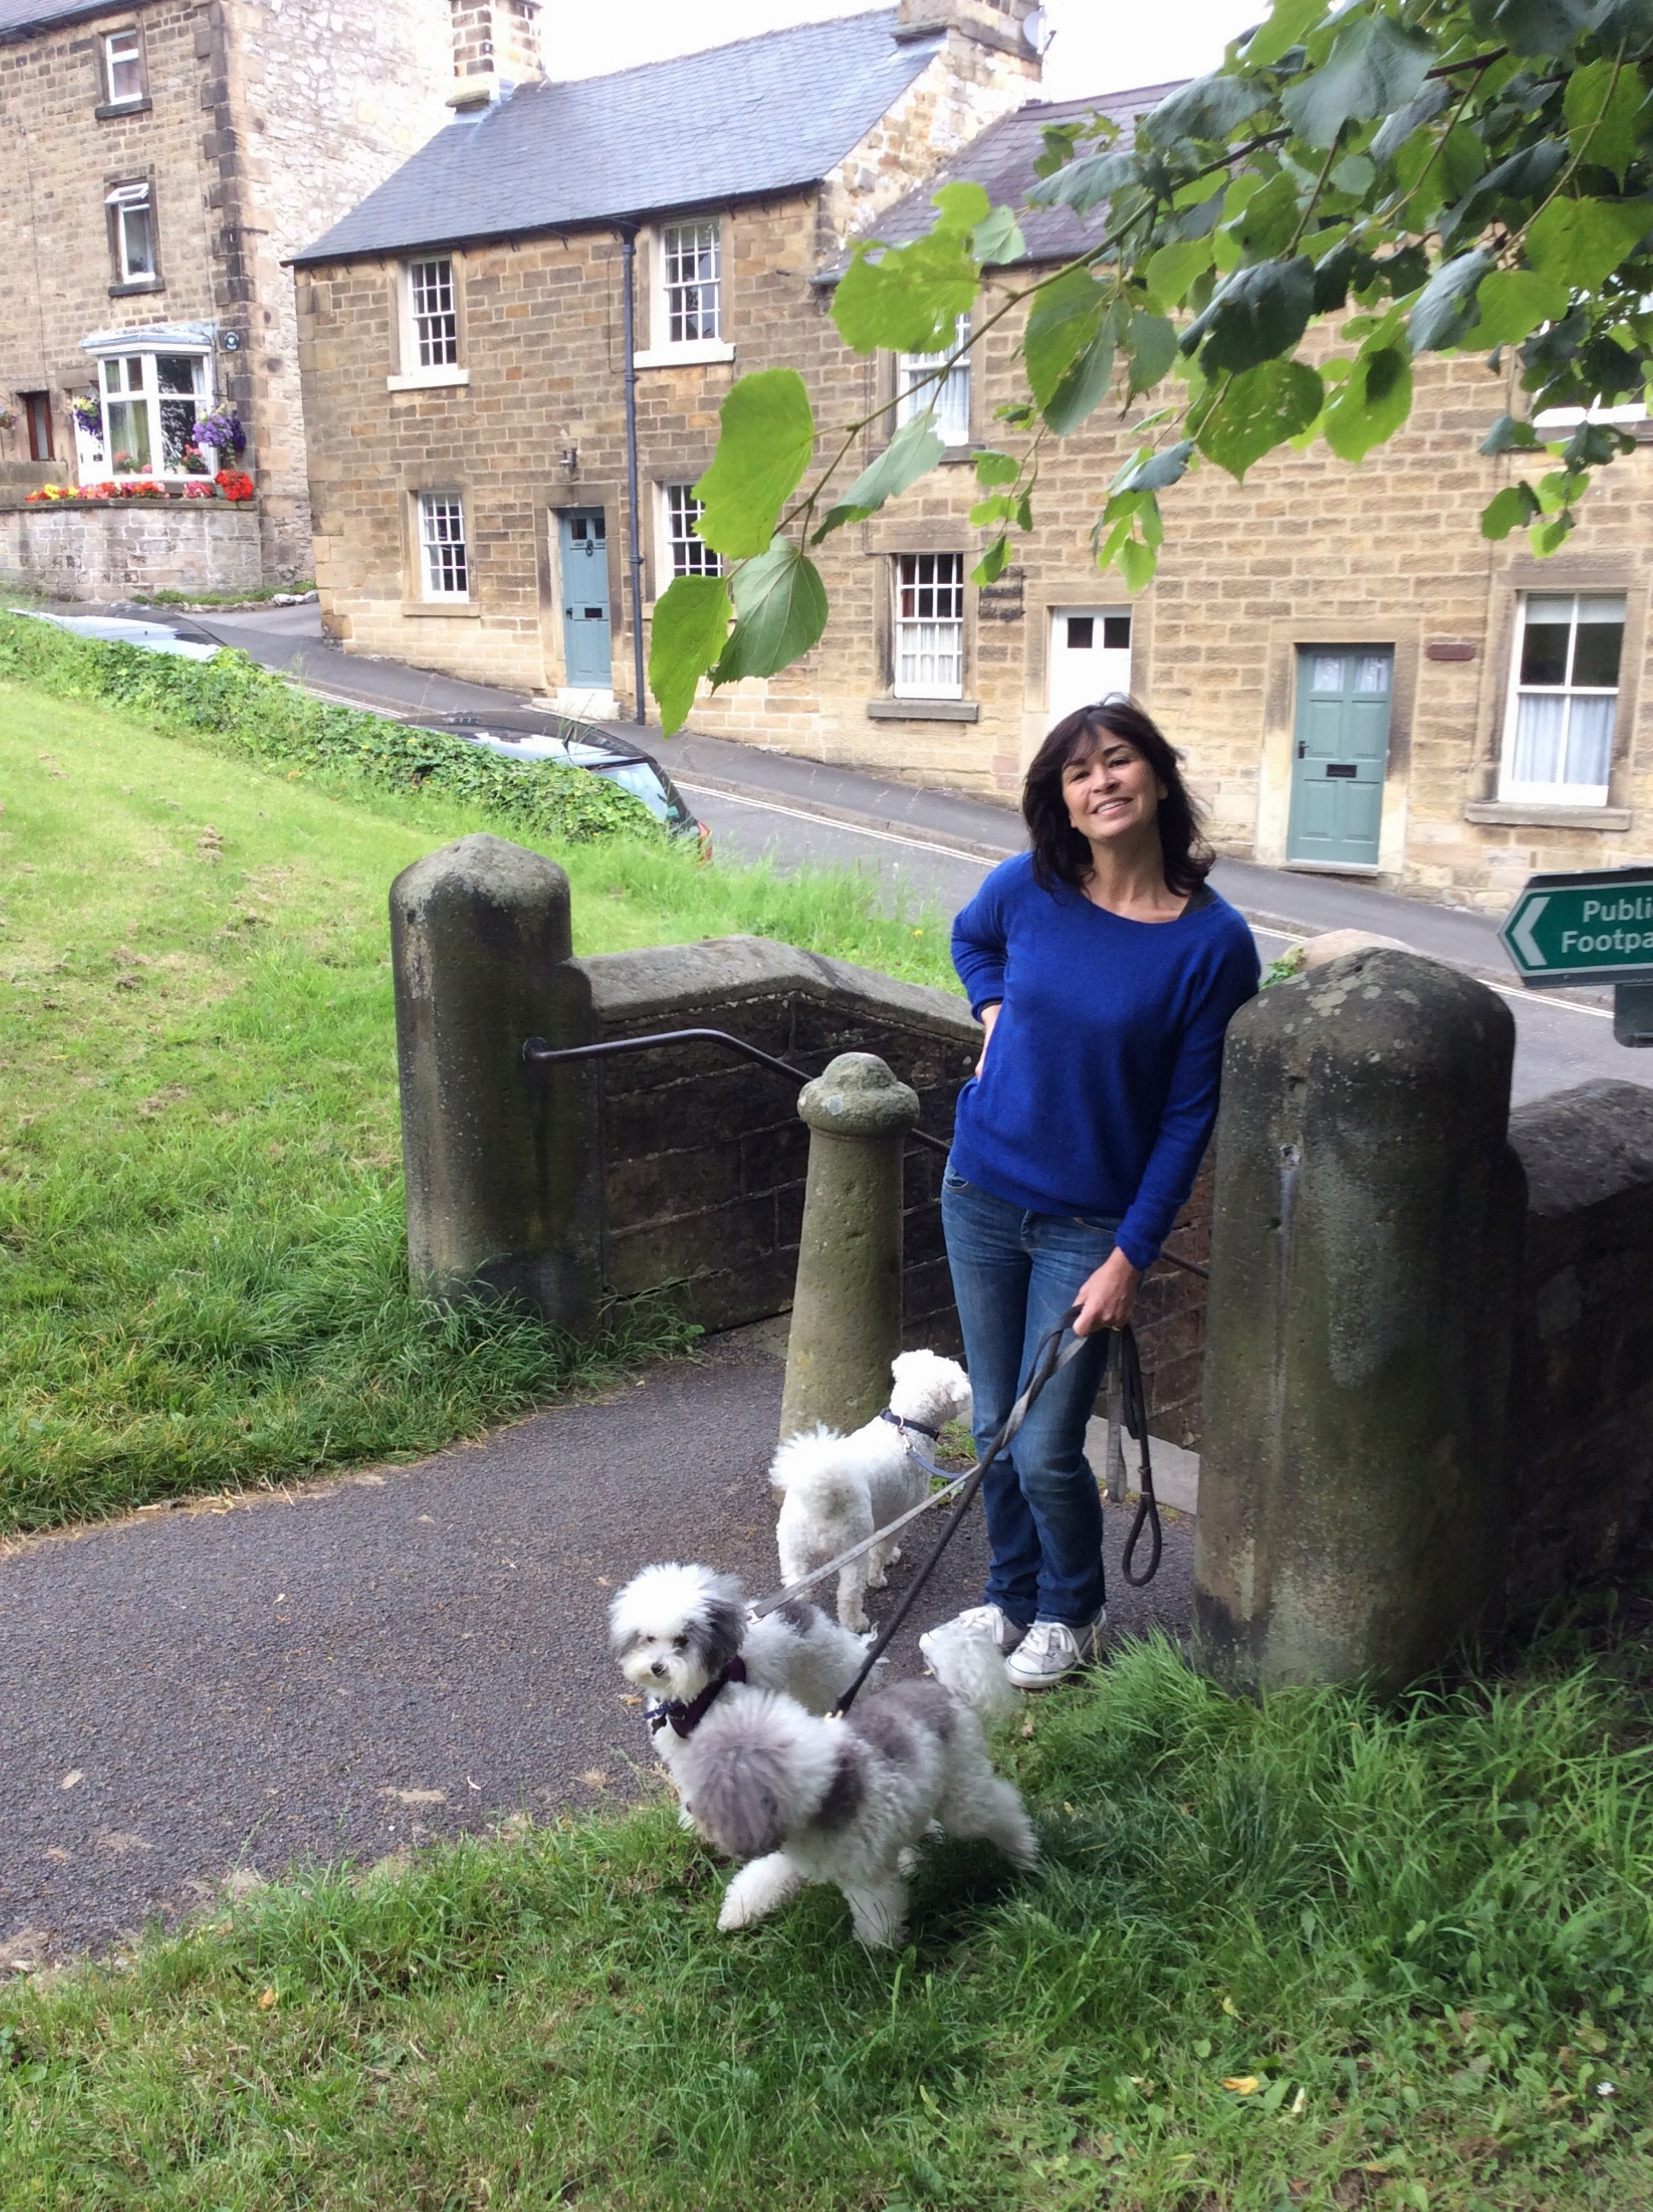 Sadie keeps doggies company while Tim and Jim check out an ancient church in Bakewell.